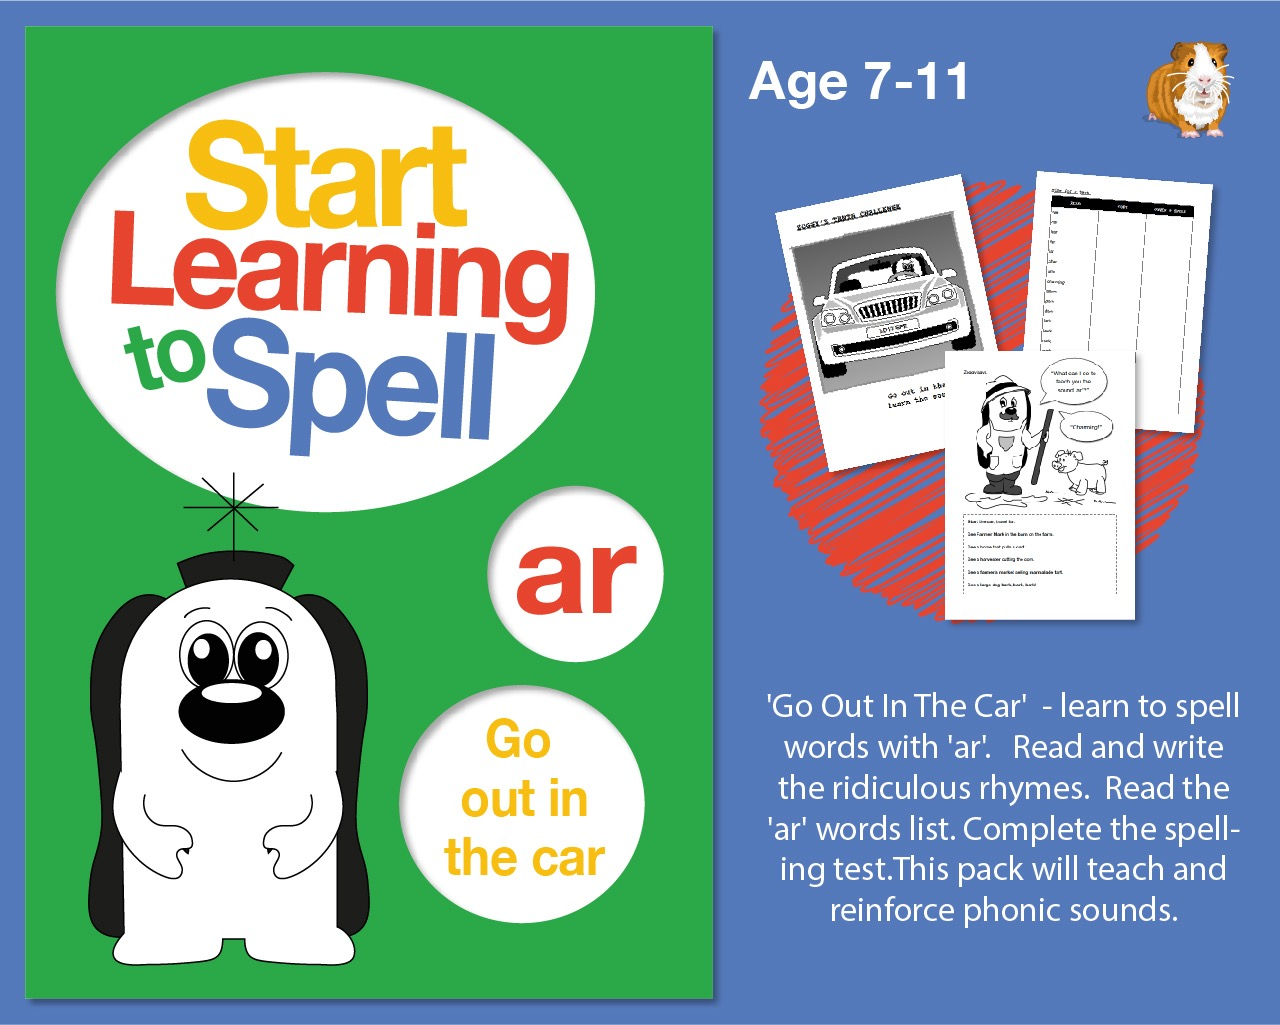 'Go Out In The Car' Learn To Spell Words With 'ar' (7-11 years)